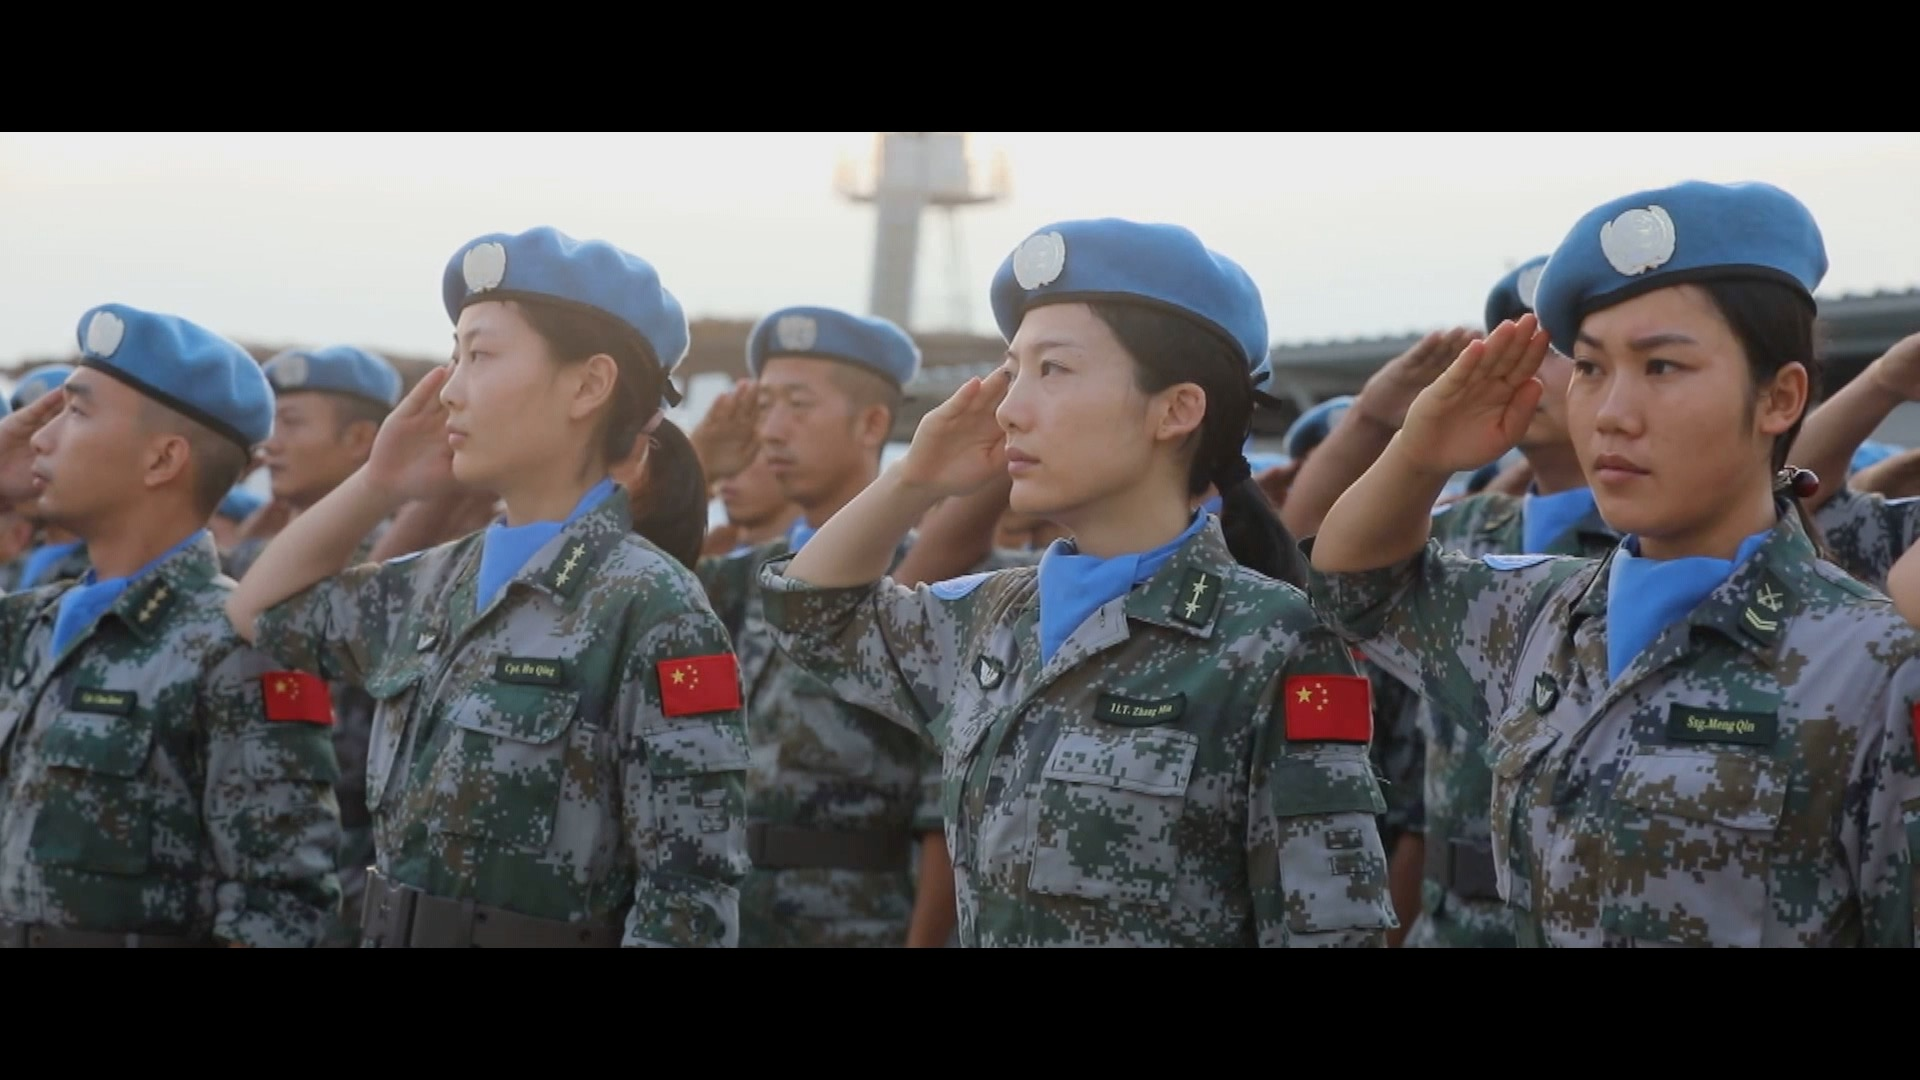 China committed to empowering women